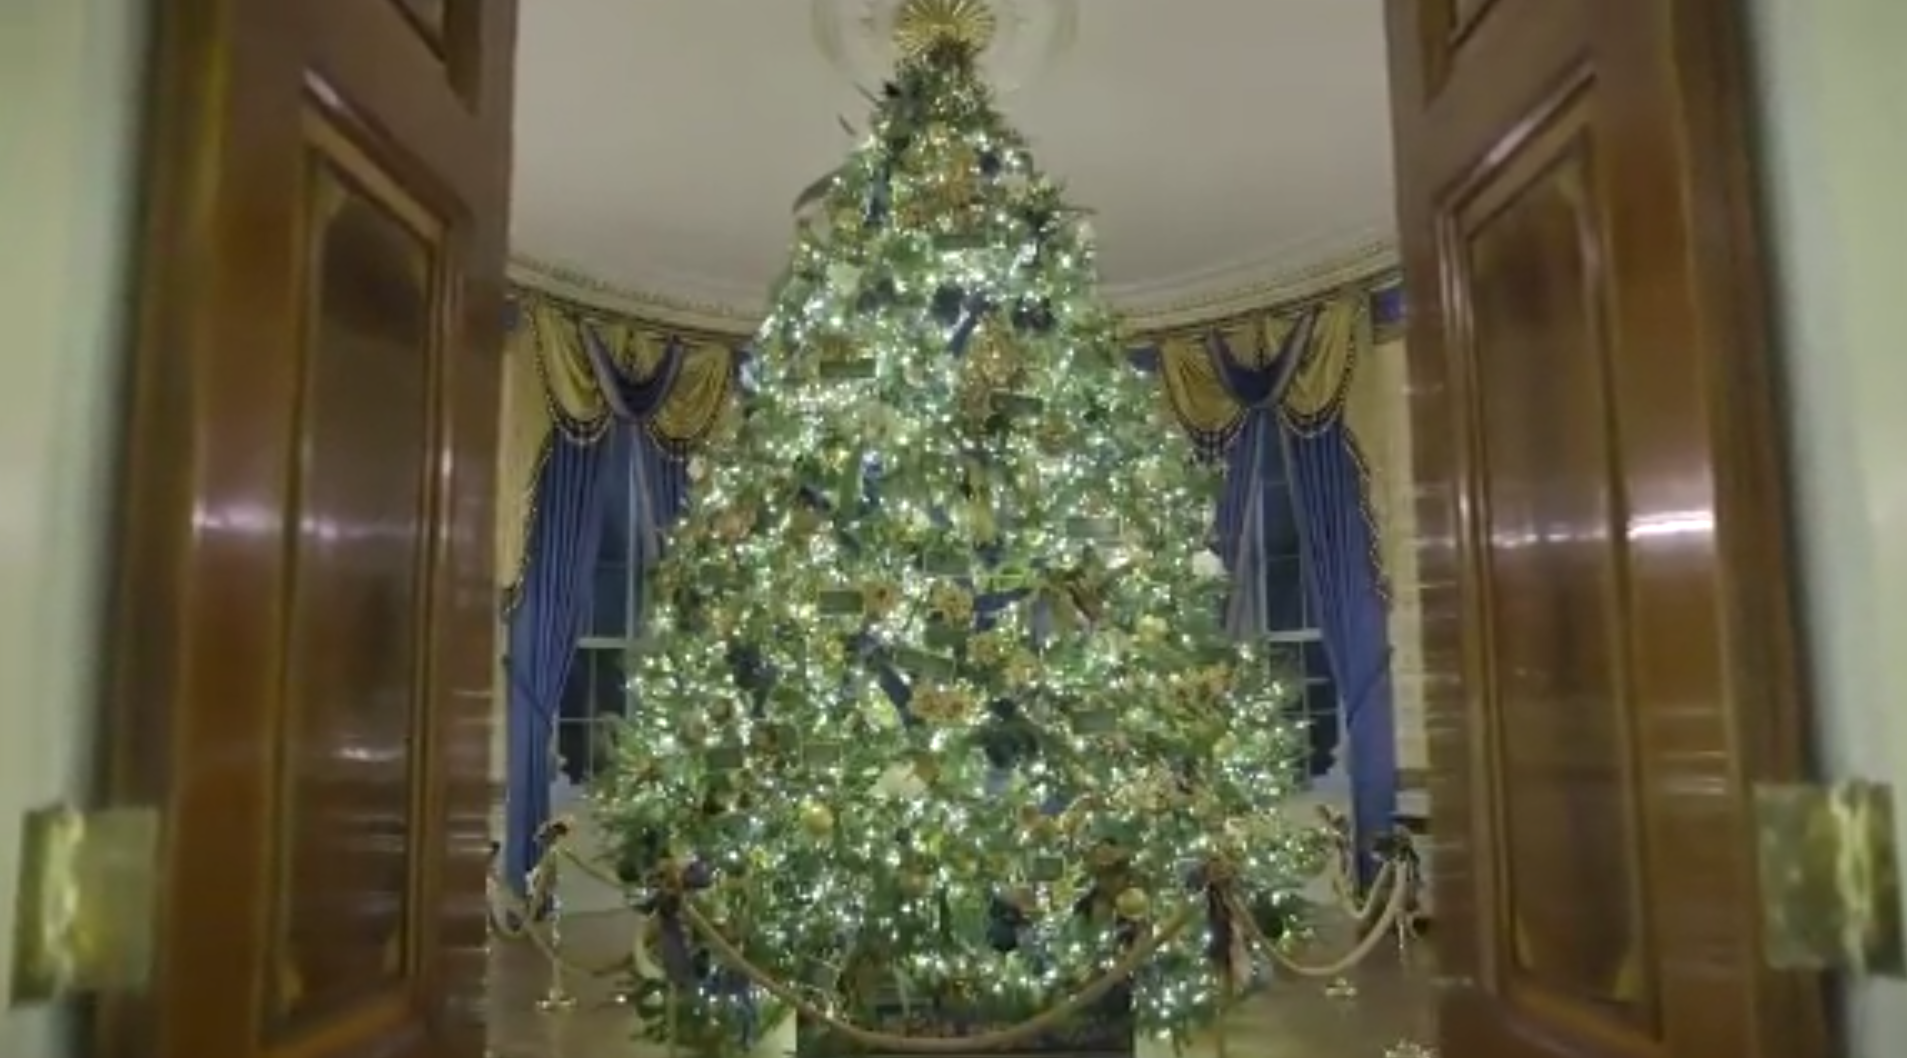 Application To Decorate The White House For Christmas 2020 Melania Trump unveils 2019 White House Christmas decorations